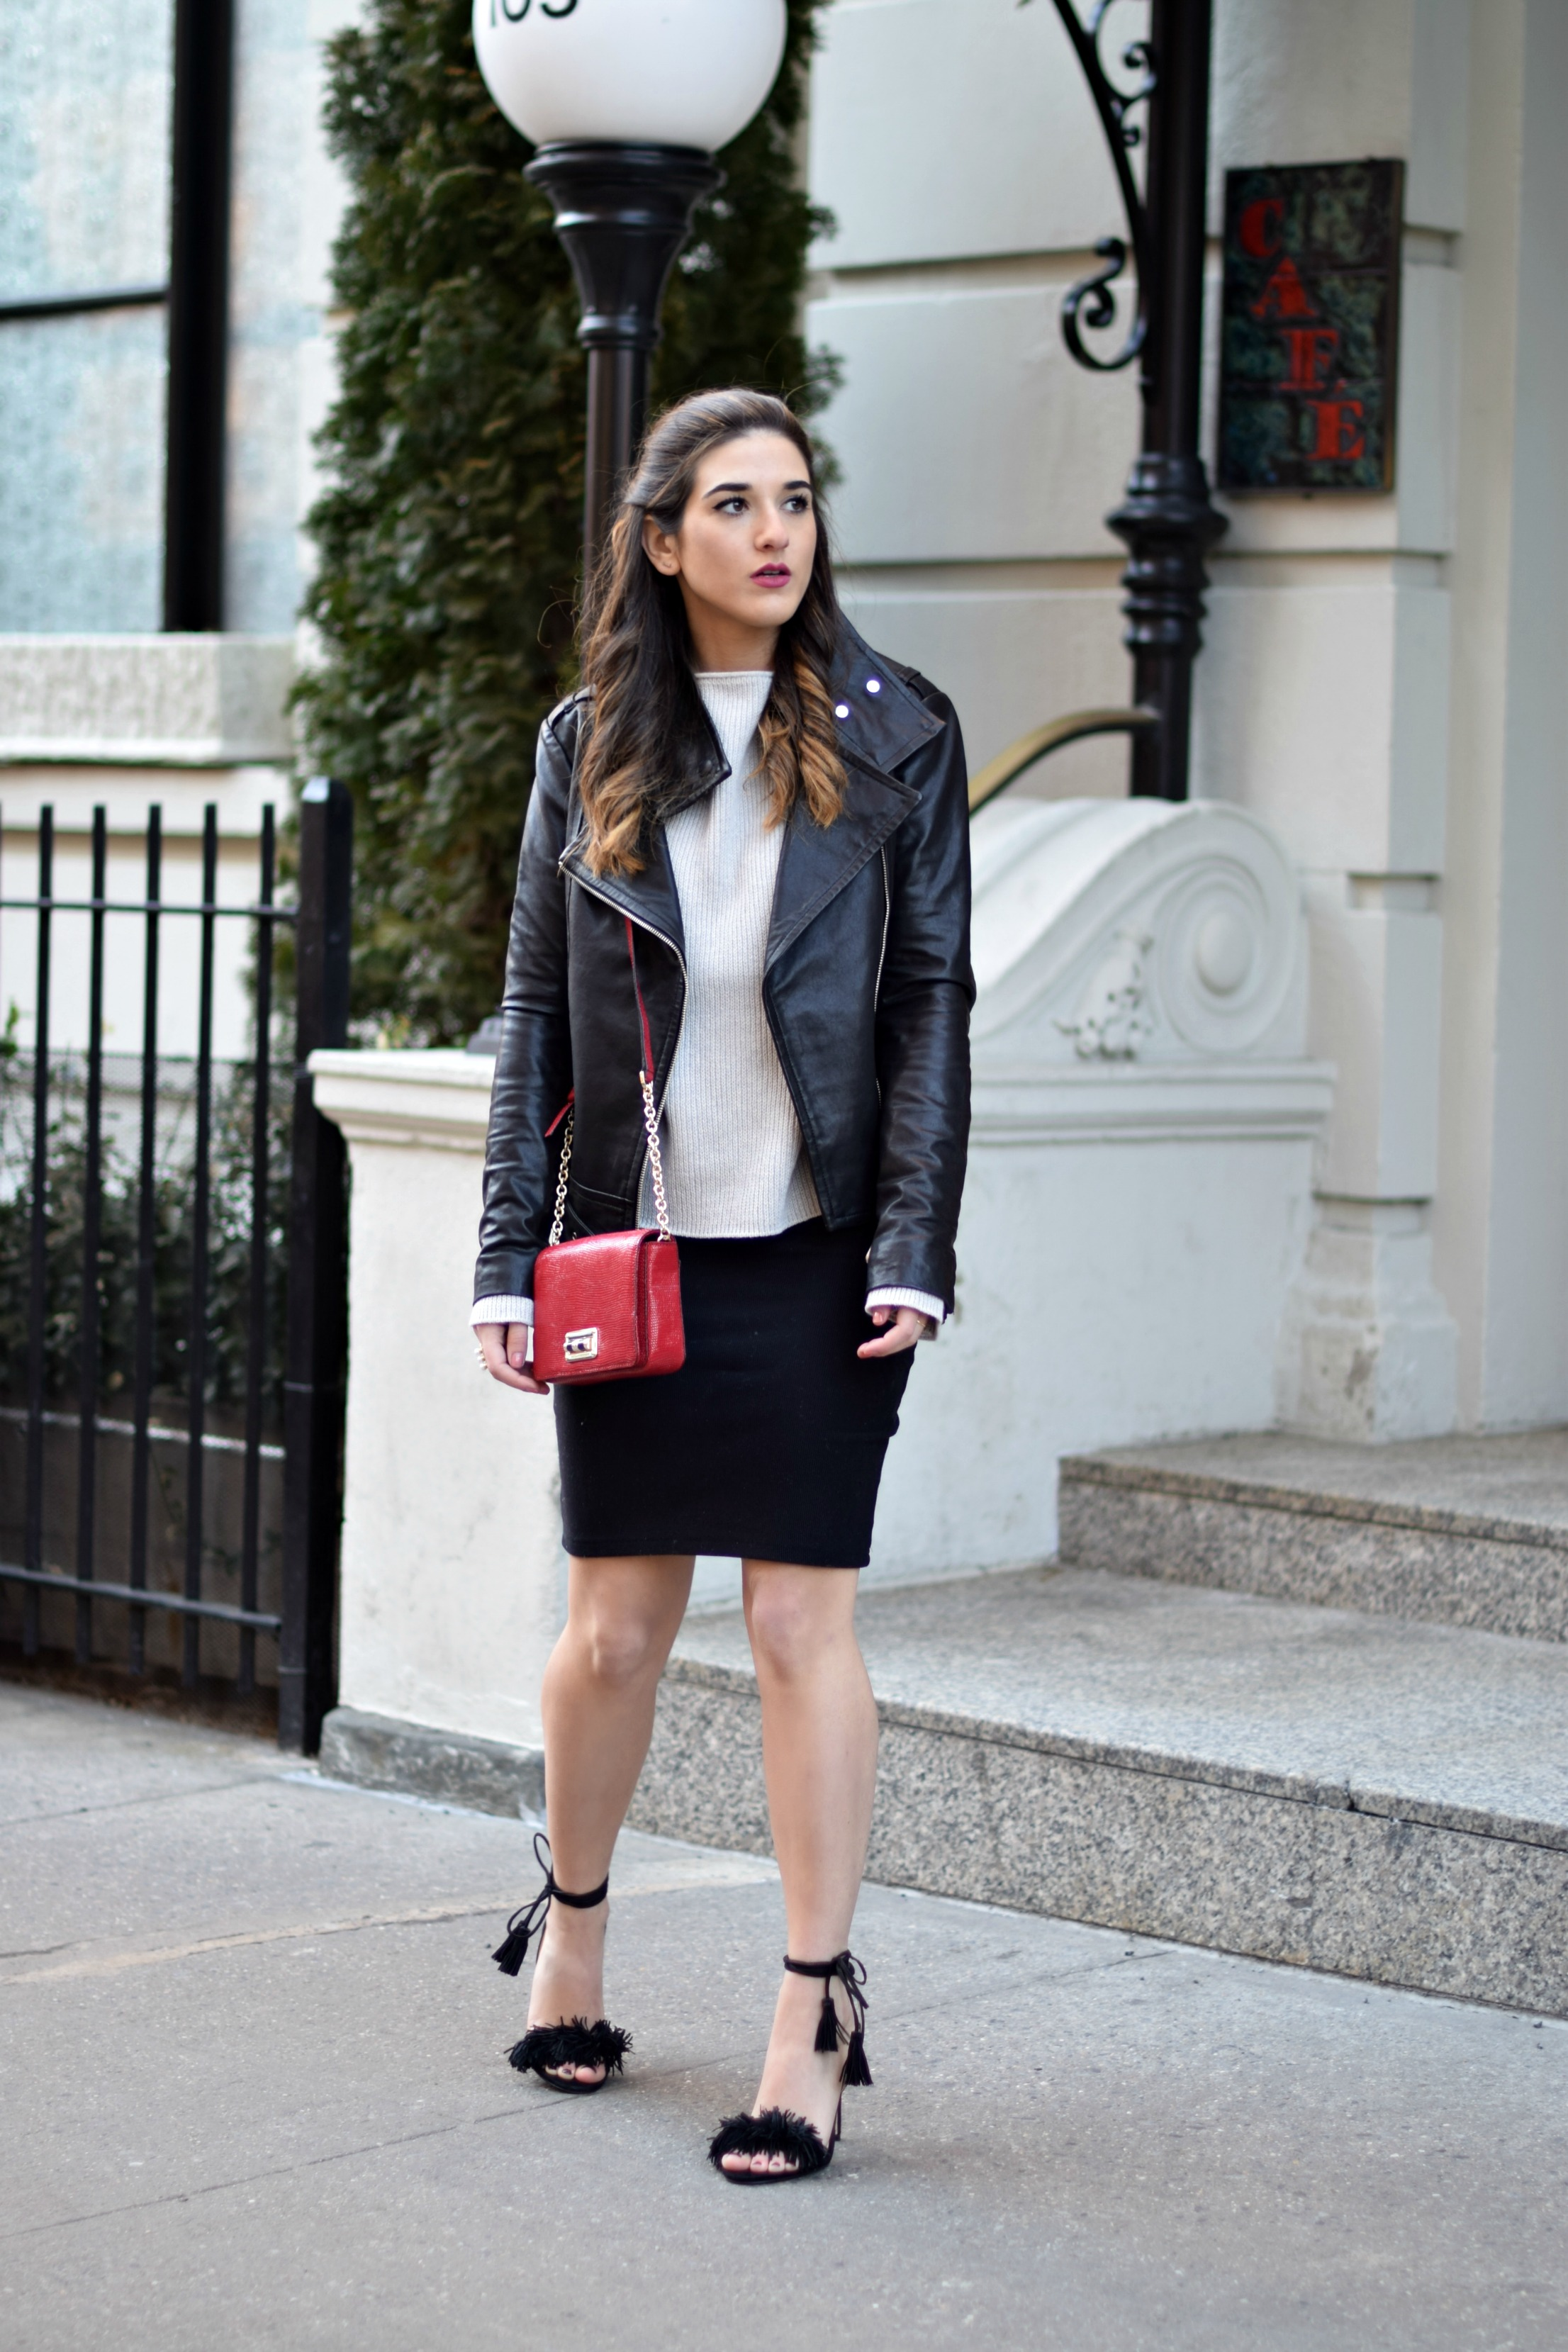 Ivanka Trump Fringe Sandals Mackage Moto Jacket Louboutins & Love Fashion Blog Esther Santer NYC Street Style Blogger Outfit OOTD Leather Summer Spring Designer Clothes Shop Model Photoshoot Helmut Lang Sweater Skirt Beautiful Pretty Shoes Women Girl.jpg